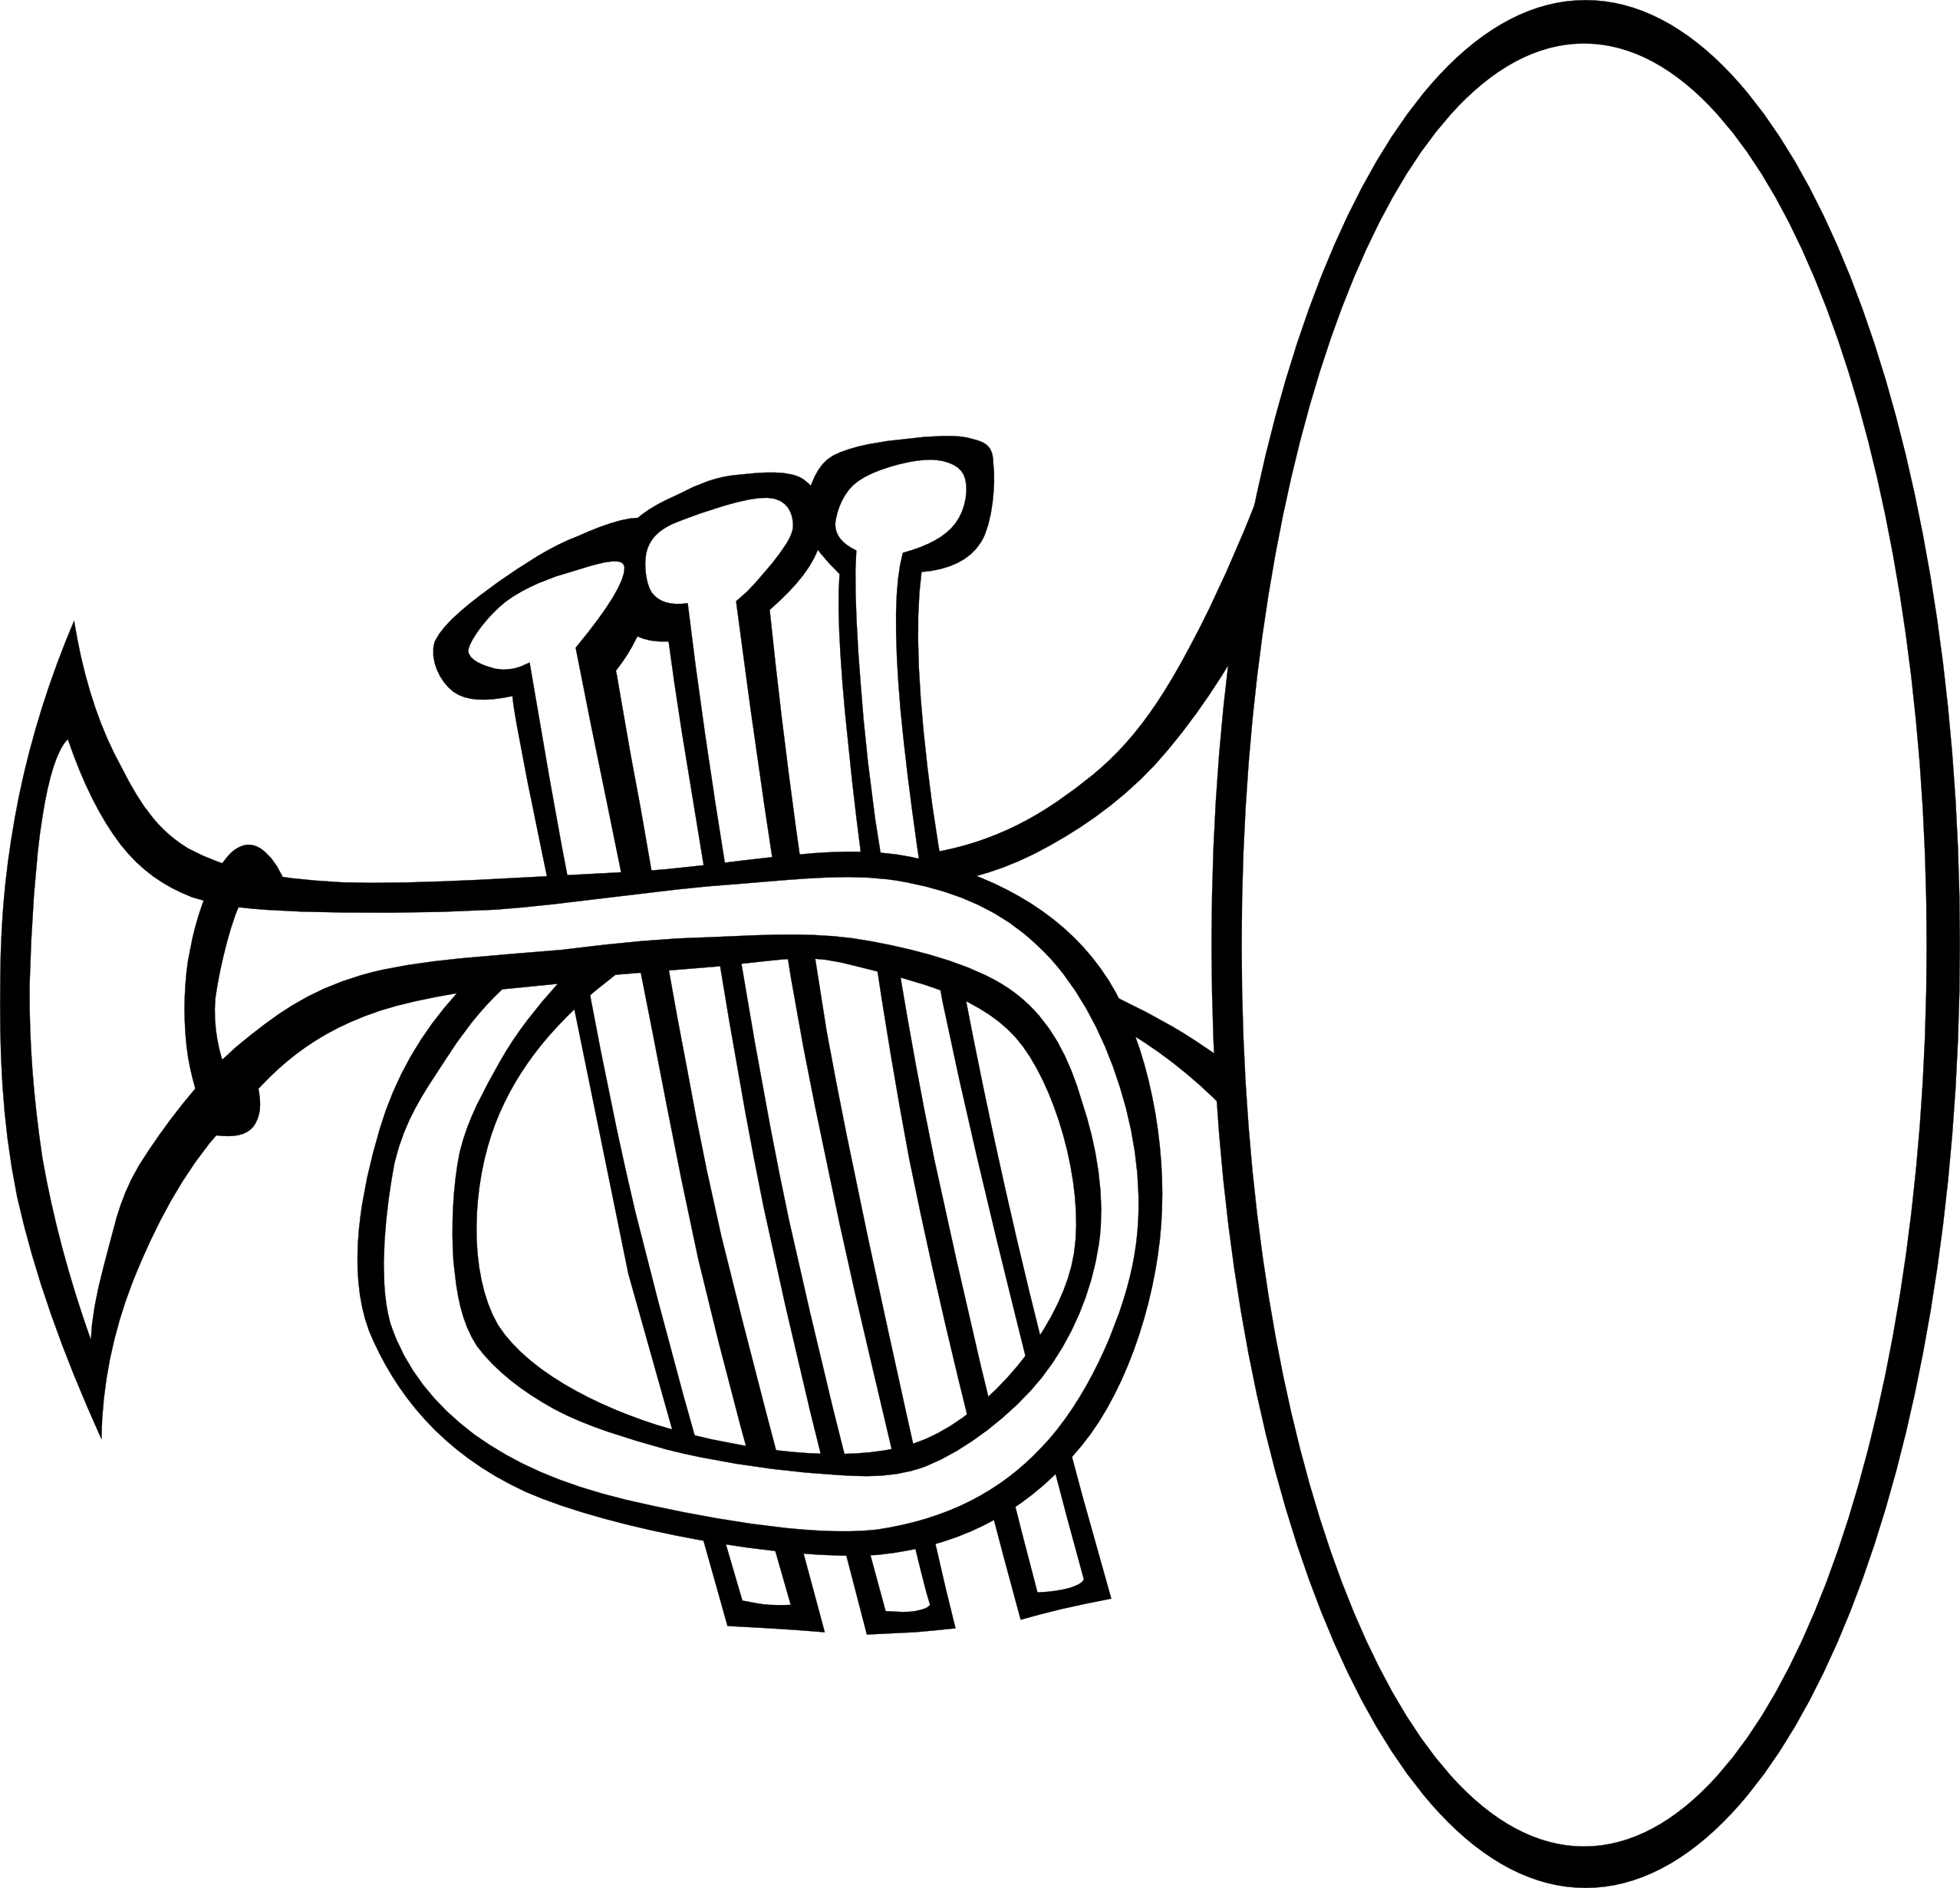 freeuse stock Musical instruments clipart black and white. Instrument